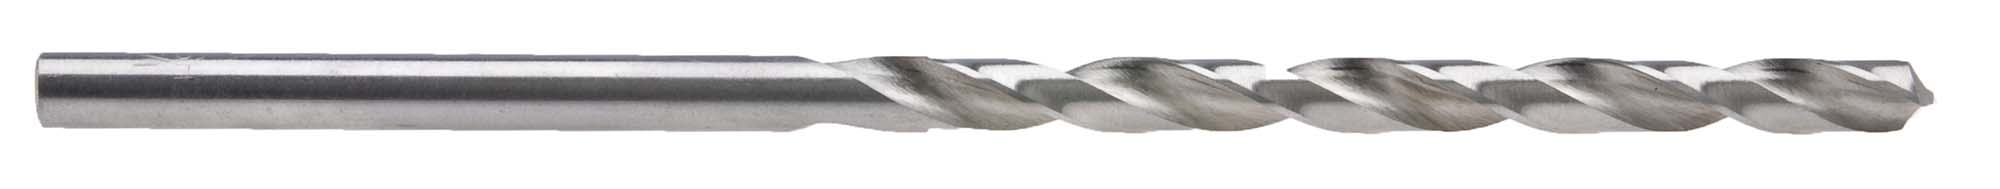 "57/64""  ""Taper Length"" Long Straight Shank Drill Bit, 10"" Overall Length, High Speed Steel"